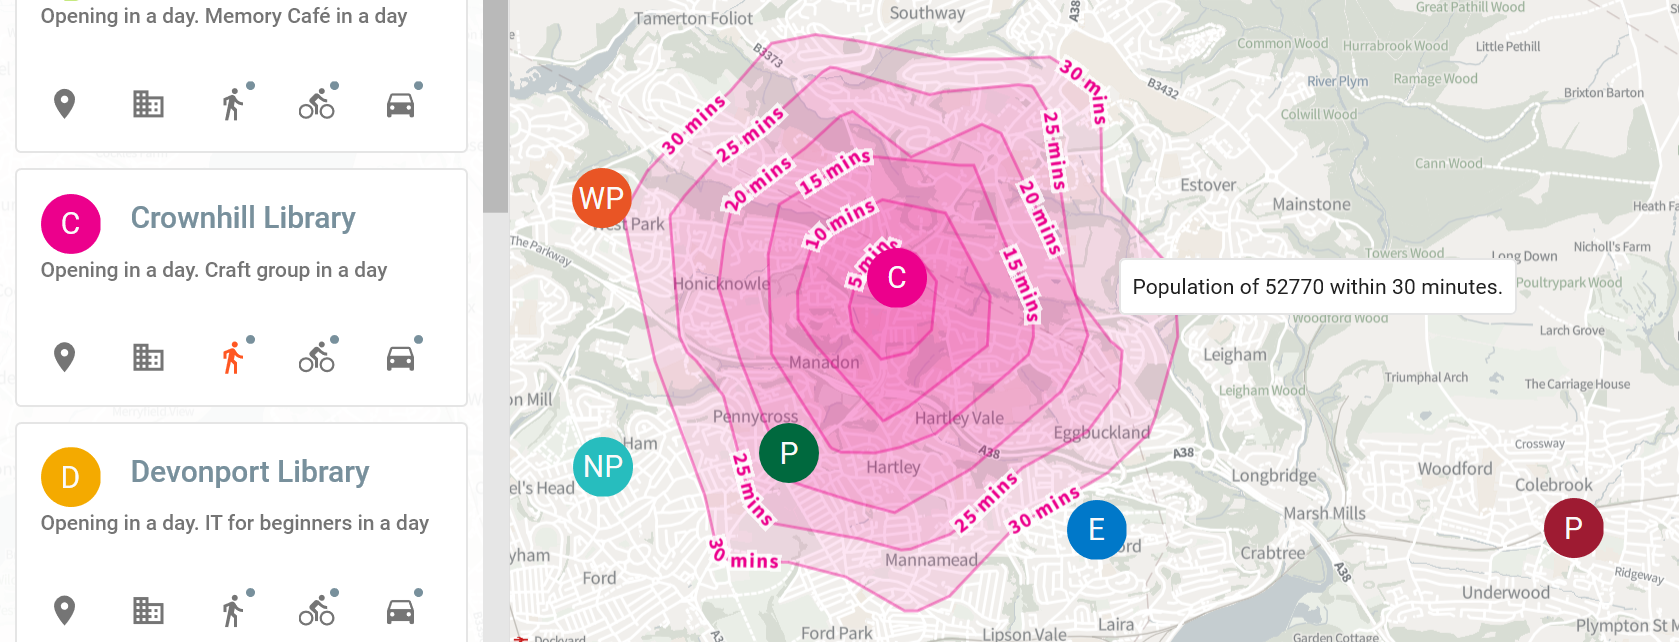 A screenshot of an isochrone around a library, showing walking distances at 5 minute intervals